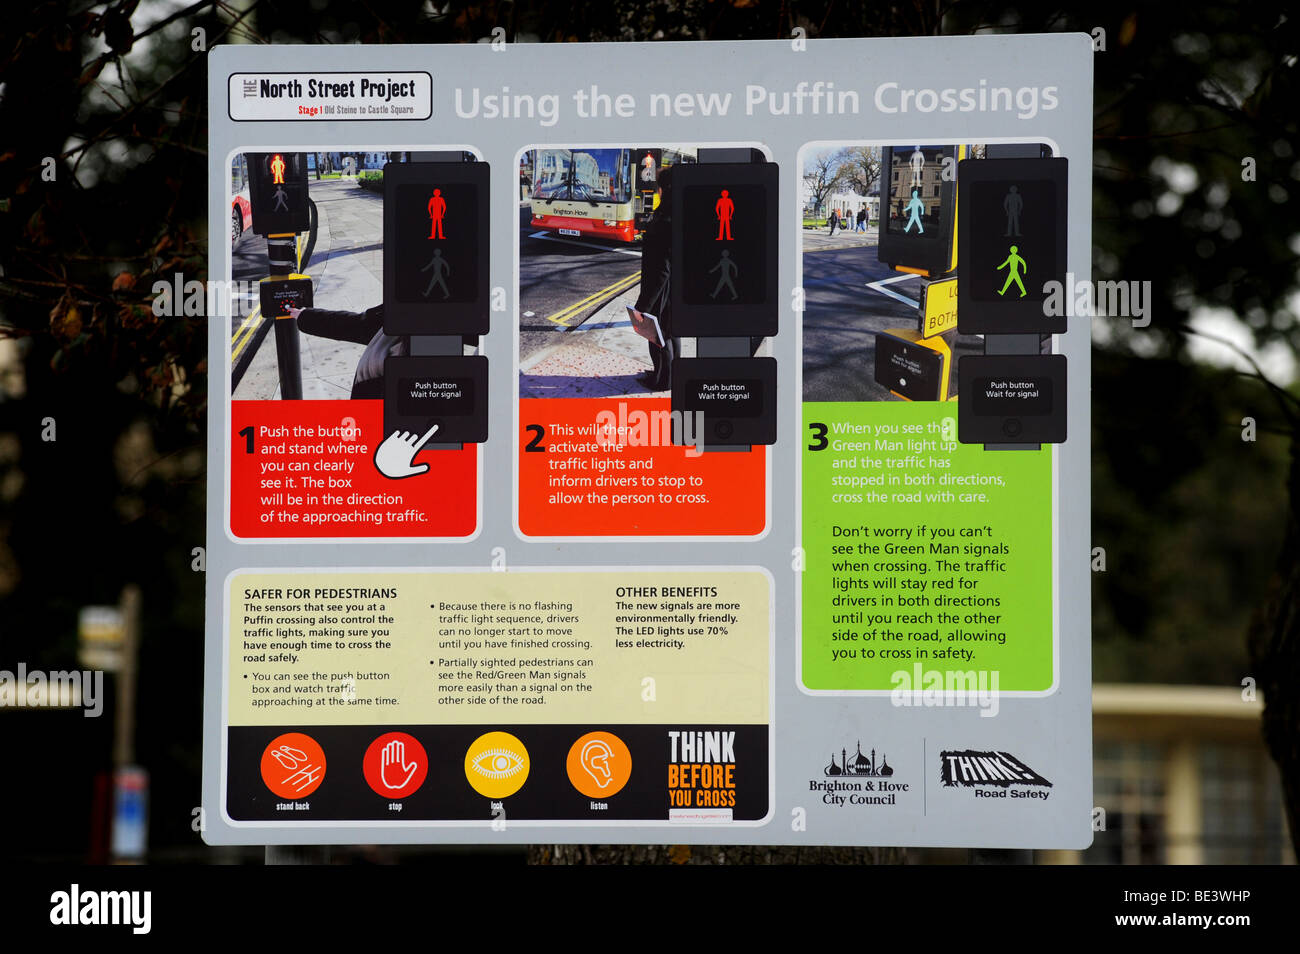 Instructions on how to use a new puffin crossing at the bottom of north street in brighton - Stock Image